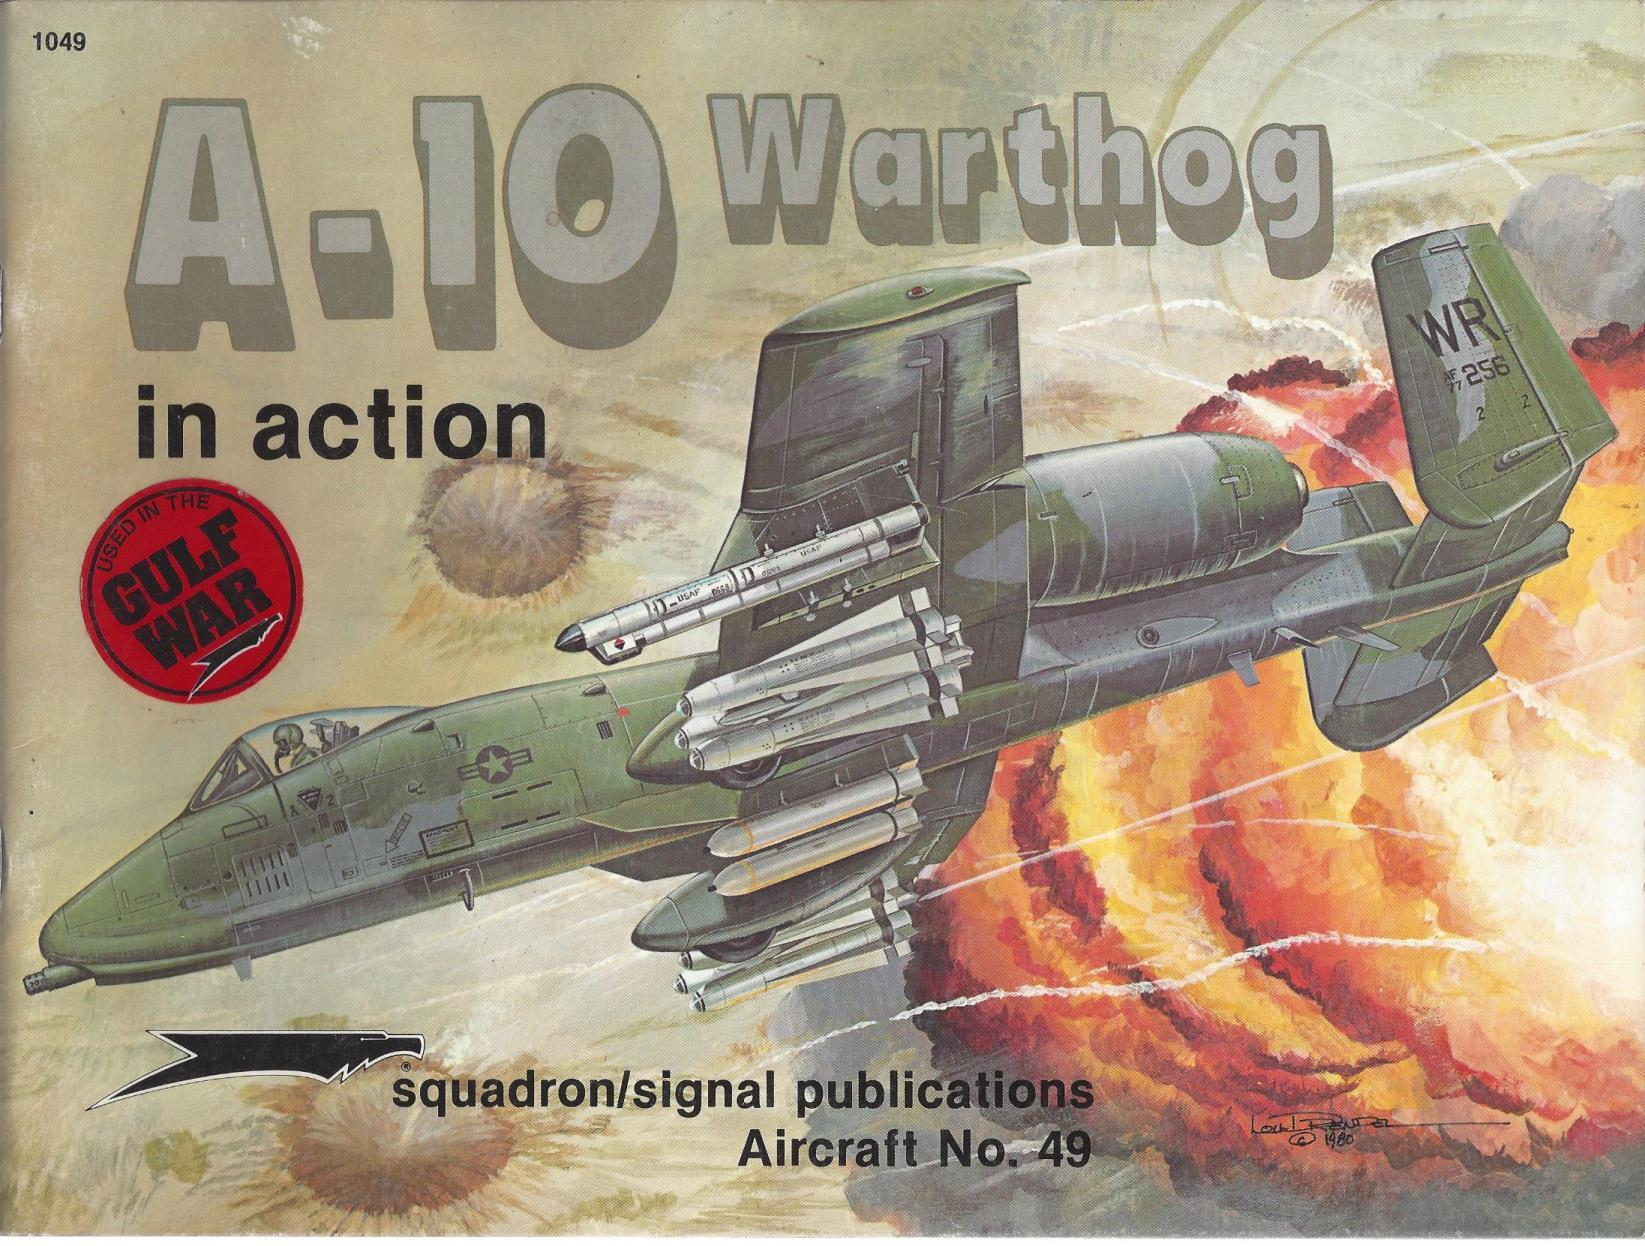 A-10 Warthog in Action - Aircraft No. 49, Drendel, Lou